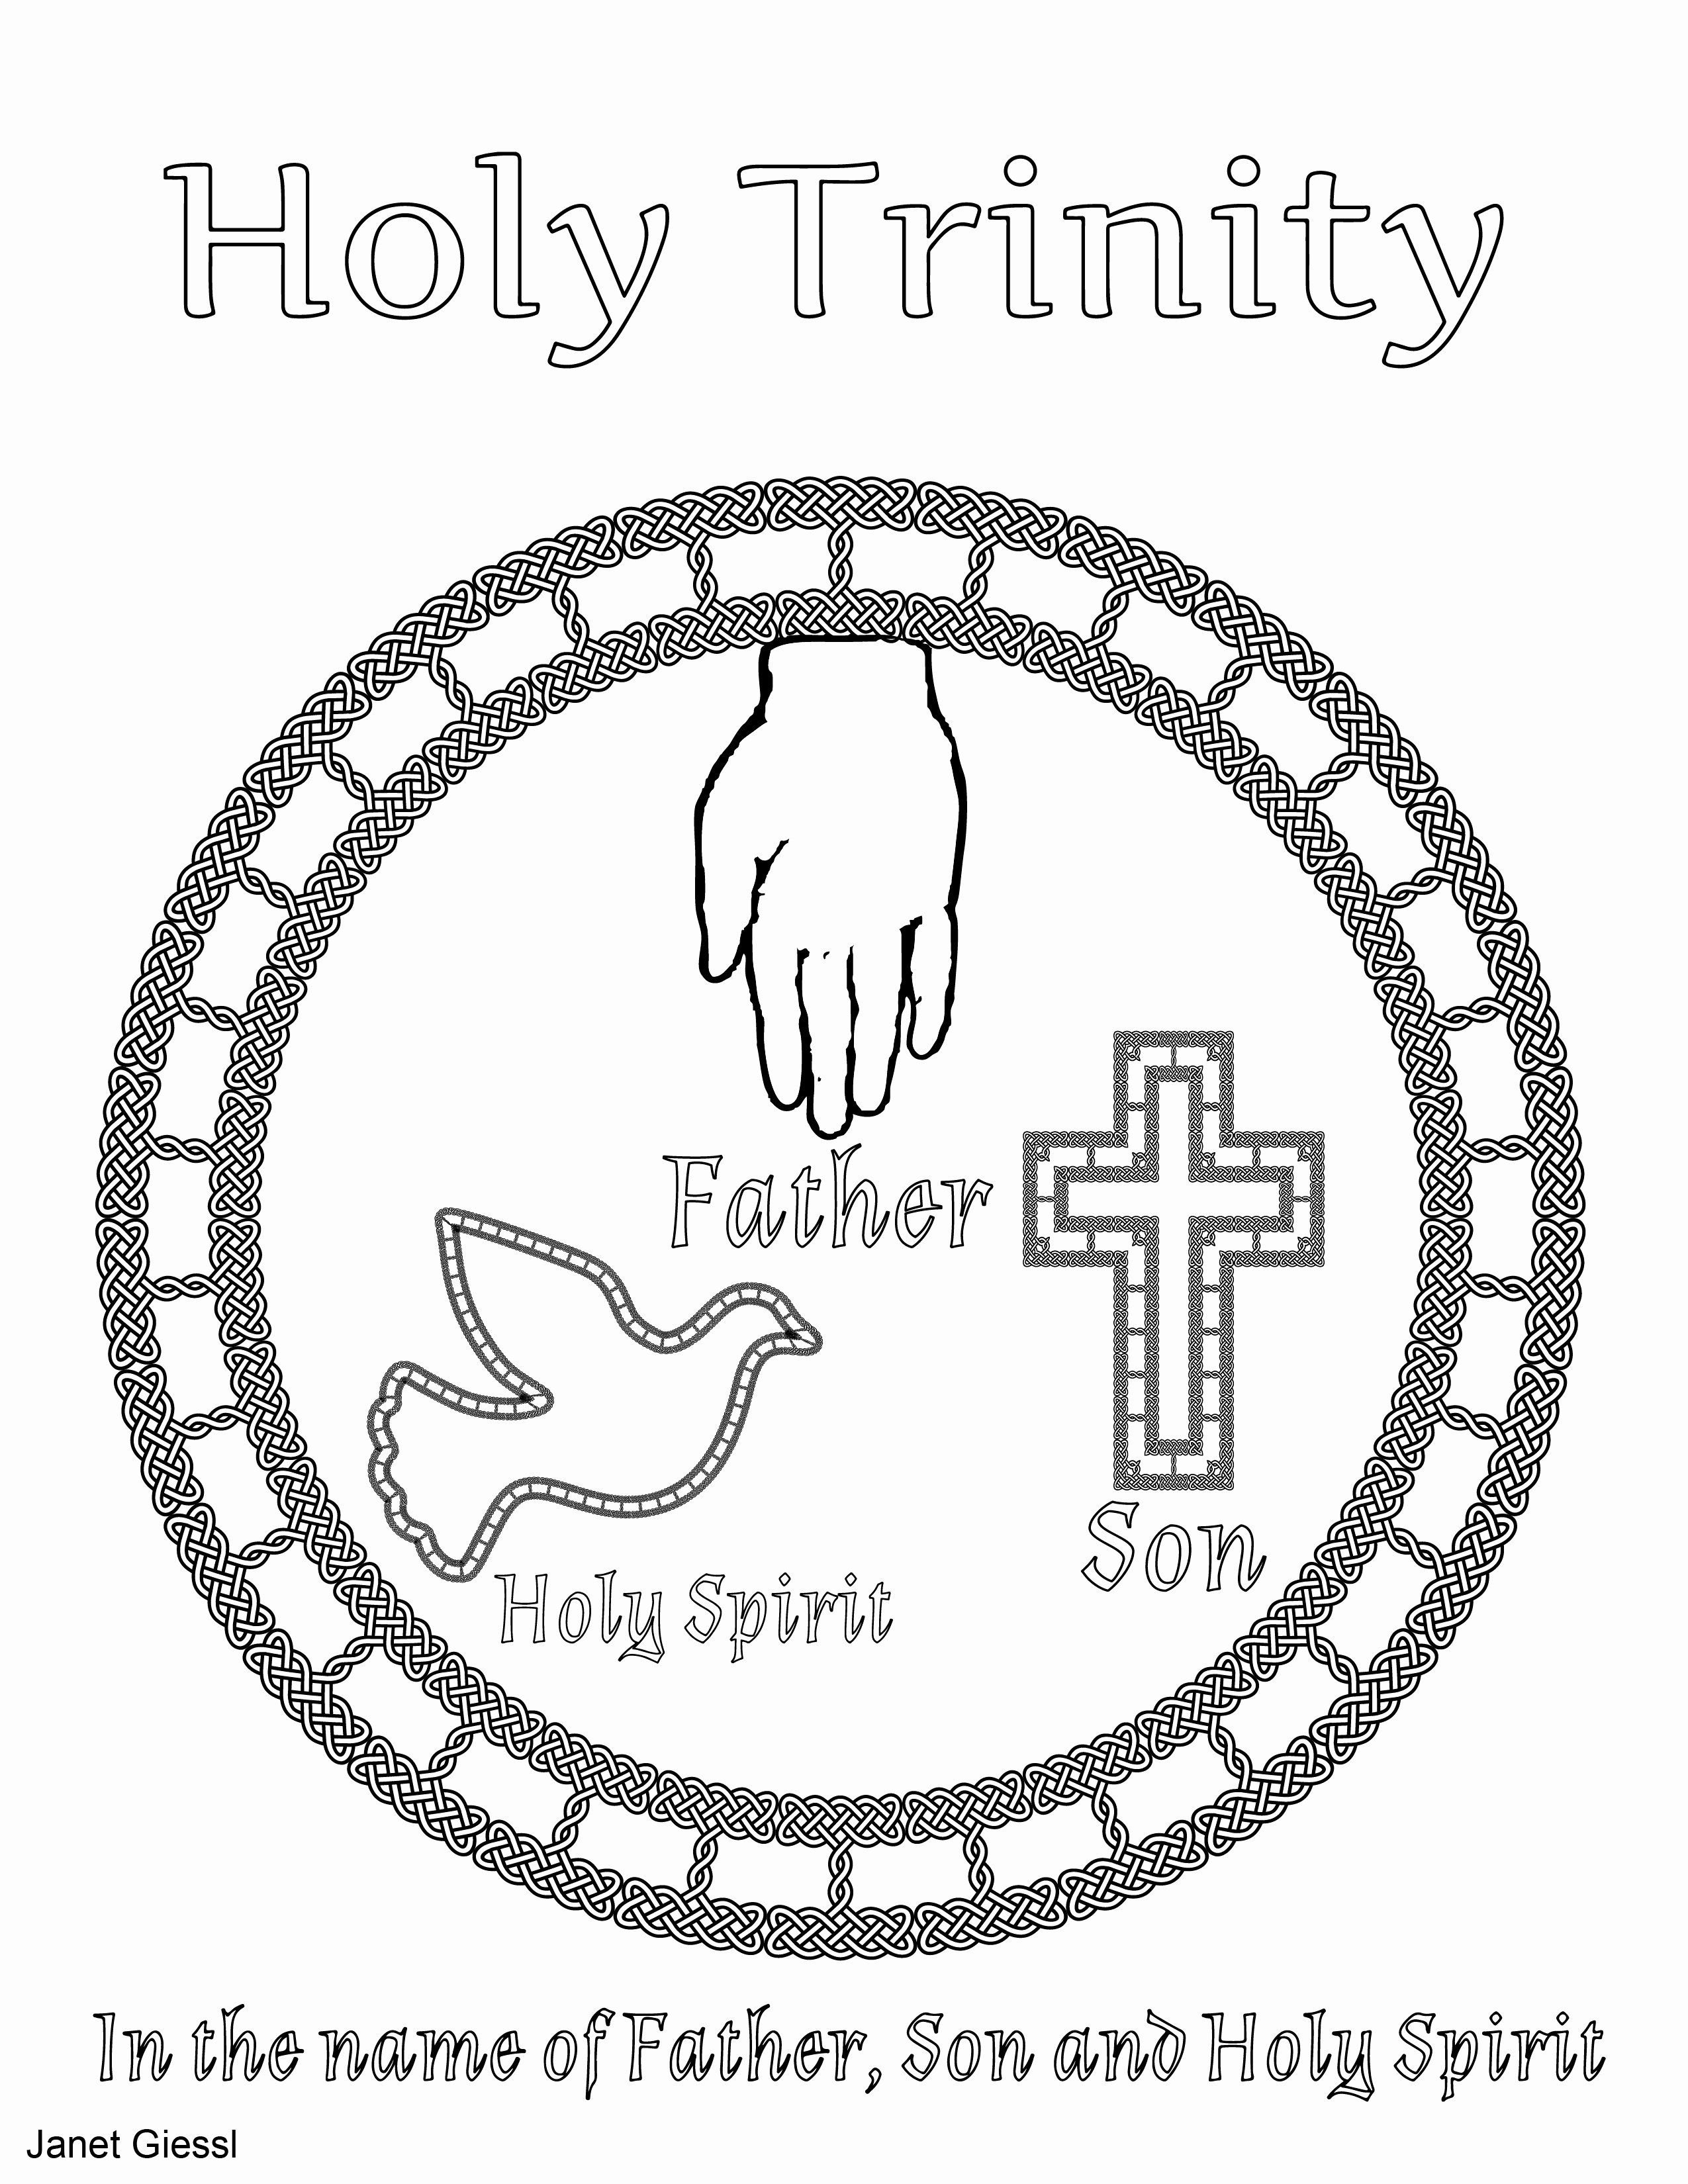 Holy Trinity Coloring Page Beautiful 43 Holy Trinity Coloring Page Shamrock Holy Trinity Wickedbabesblog Co Coloring Pages Minion Coloring Pages Holy Trinity